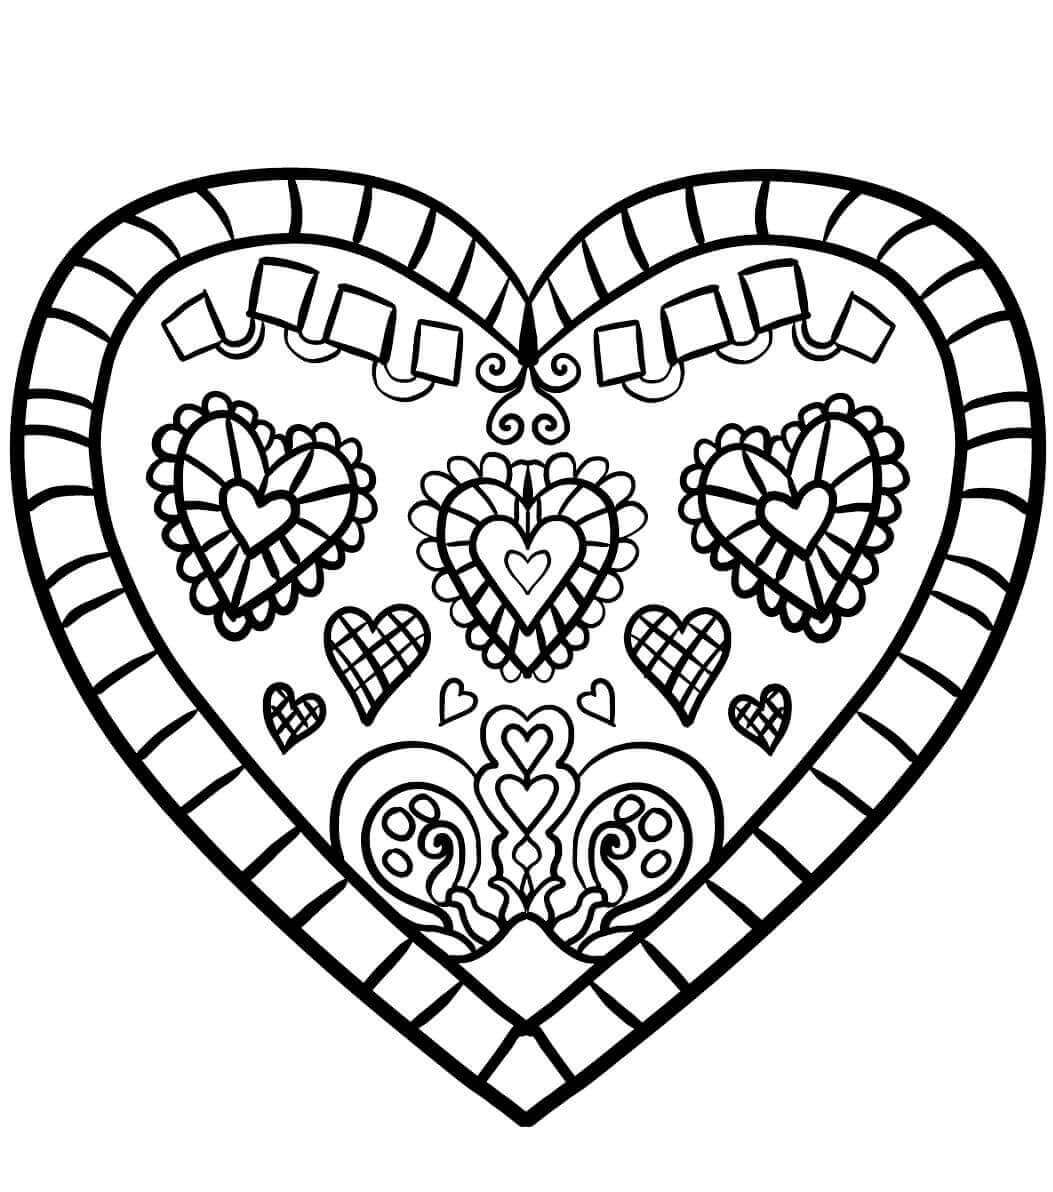 coloring pictures of hearts free printable heart coloring pages for kids pictures coloring hearts of